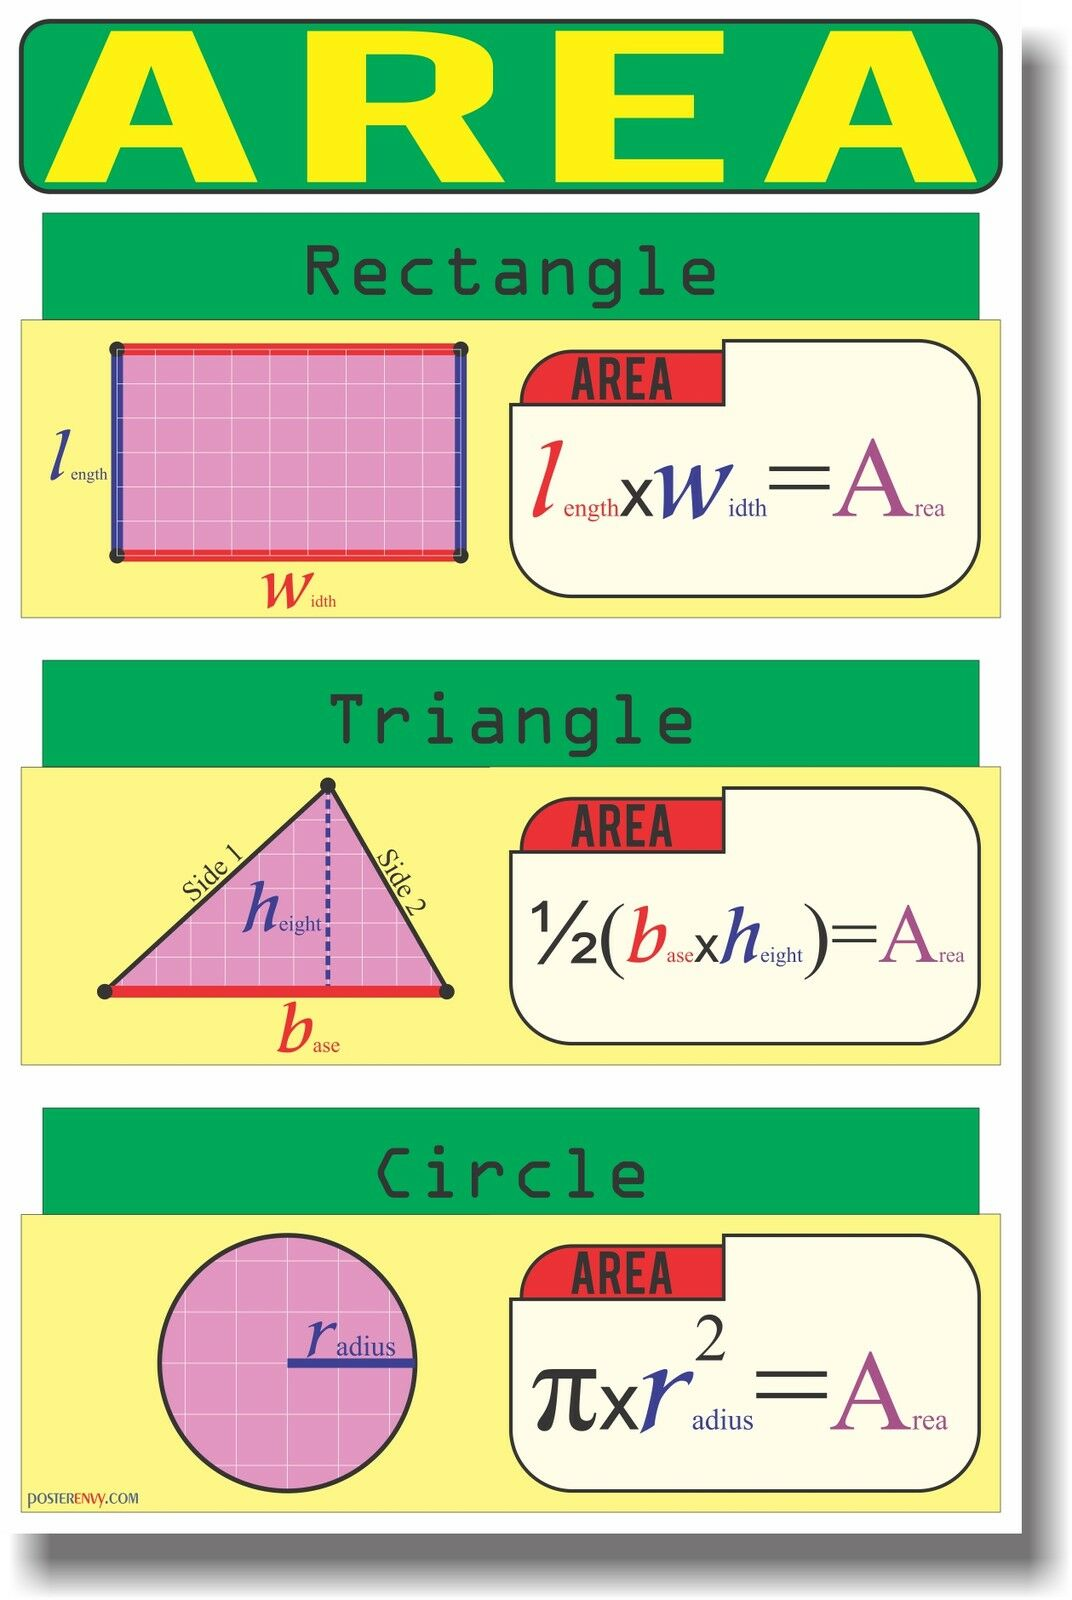 New math educational geometry classroom poster area ebay for Free travel posters for teachers